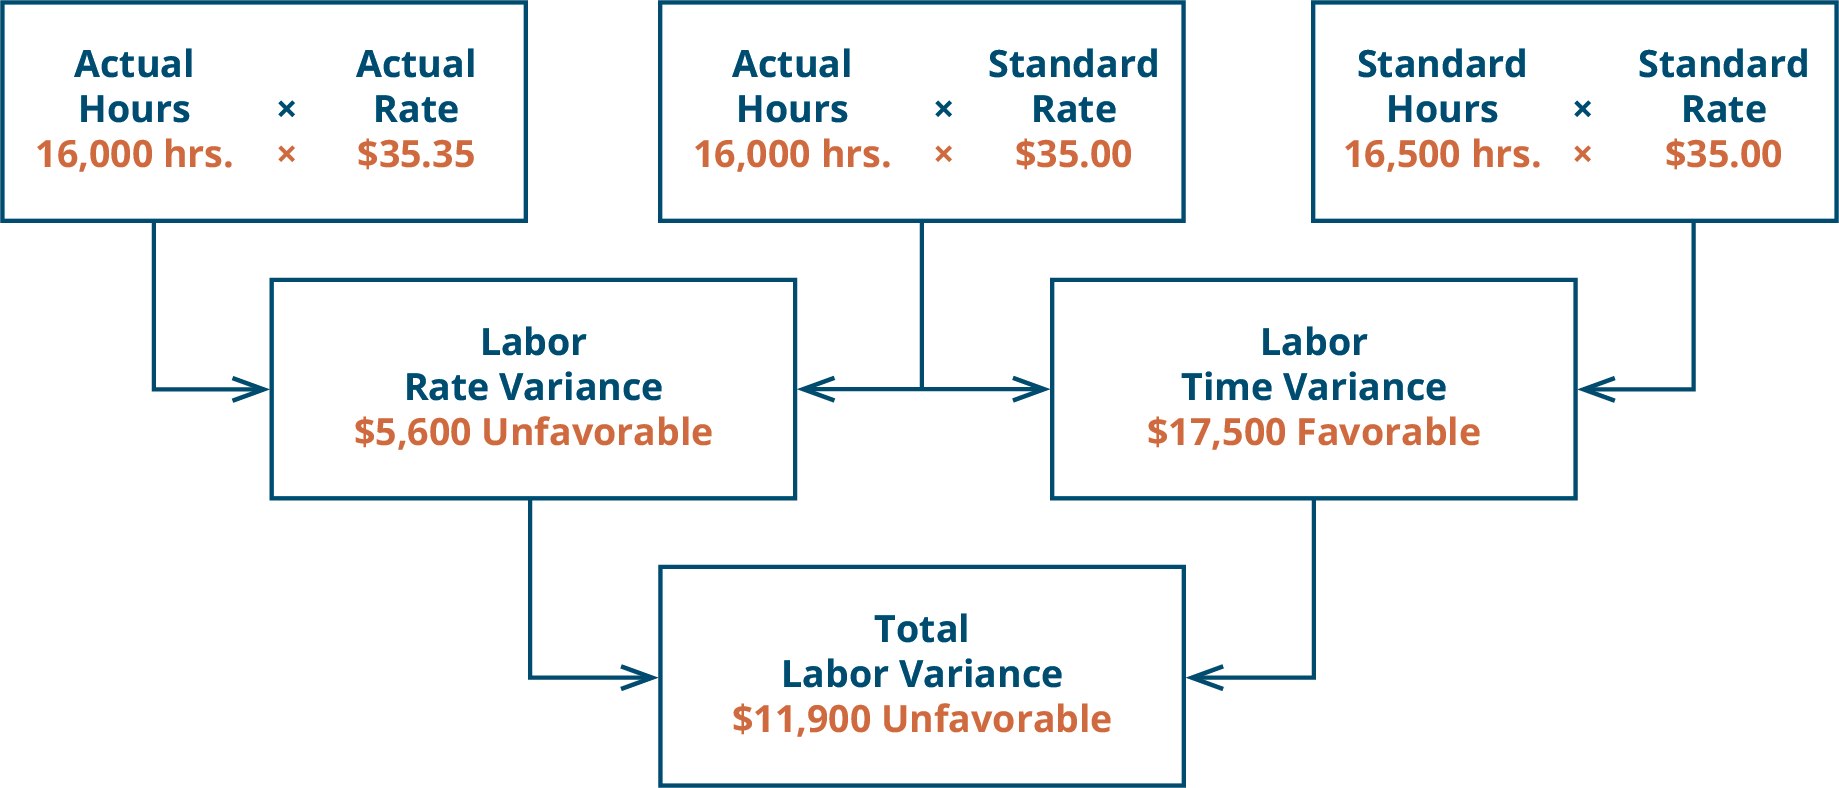 There are three top row boxes. Two, Actual Hours (16,000) times Actual Rate ($35.35) and Actual Hours (16,000) times Standard Rate ($35.00) combine to point to a Second row box: Direct Labor Rate Variance $5,600 U. Two top row boxes: Actual Hours (16,000) times Standard Rate ($35.00) and Standard Hours (16,500) times Standard Rate ($35.00) combine to point to Second row box: Direct Labor Time Variance $17,500 F. Notice the middle top row box is used for both of the variances. Second row boxes: Direct Labor Rate Variance $5,650 U and Direct Labor Time Variance $17,500 F combine to point to bottom row box: Total Direct Labor Variance $11,900 U.